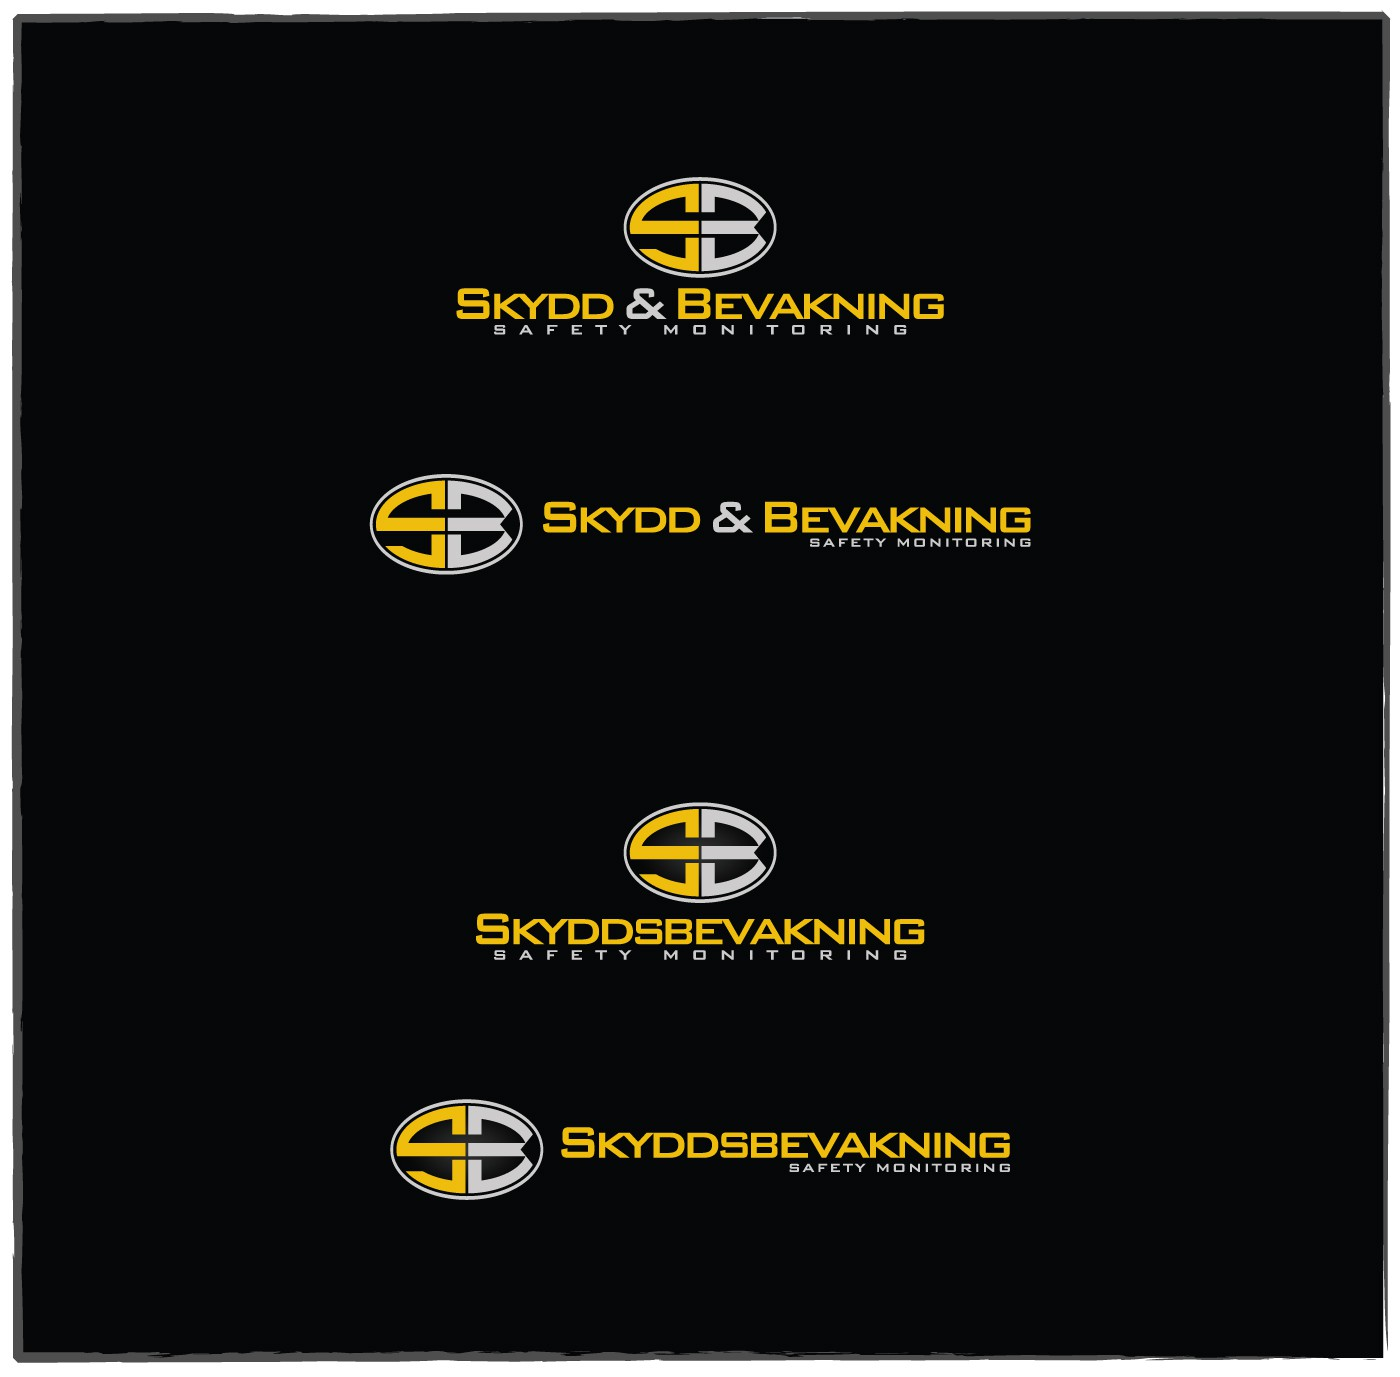 Skyddsbevakning / need a proffesional logo / Security,Guard,Protection company /